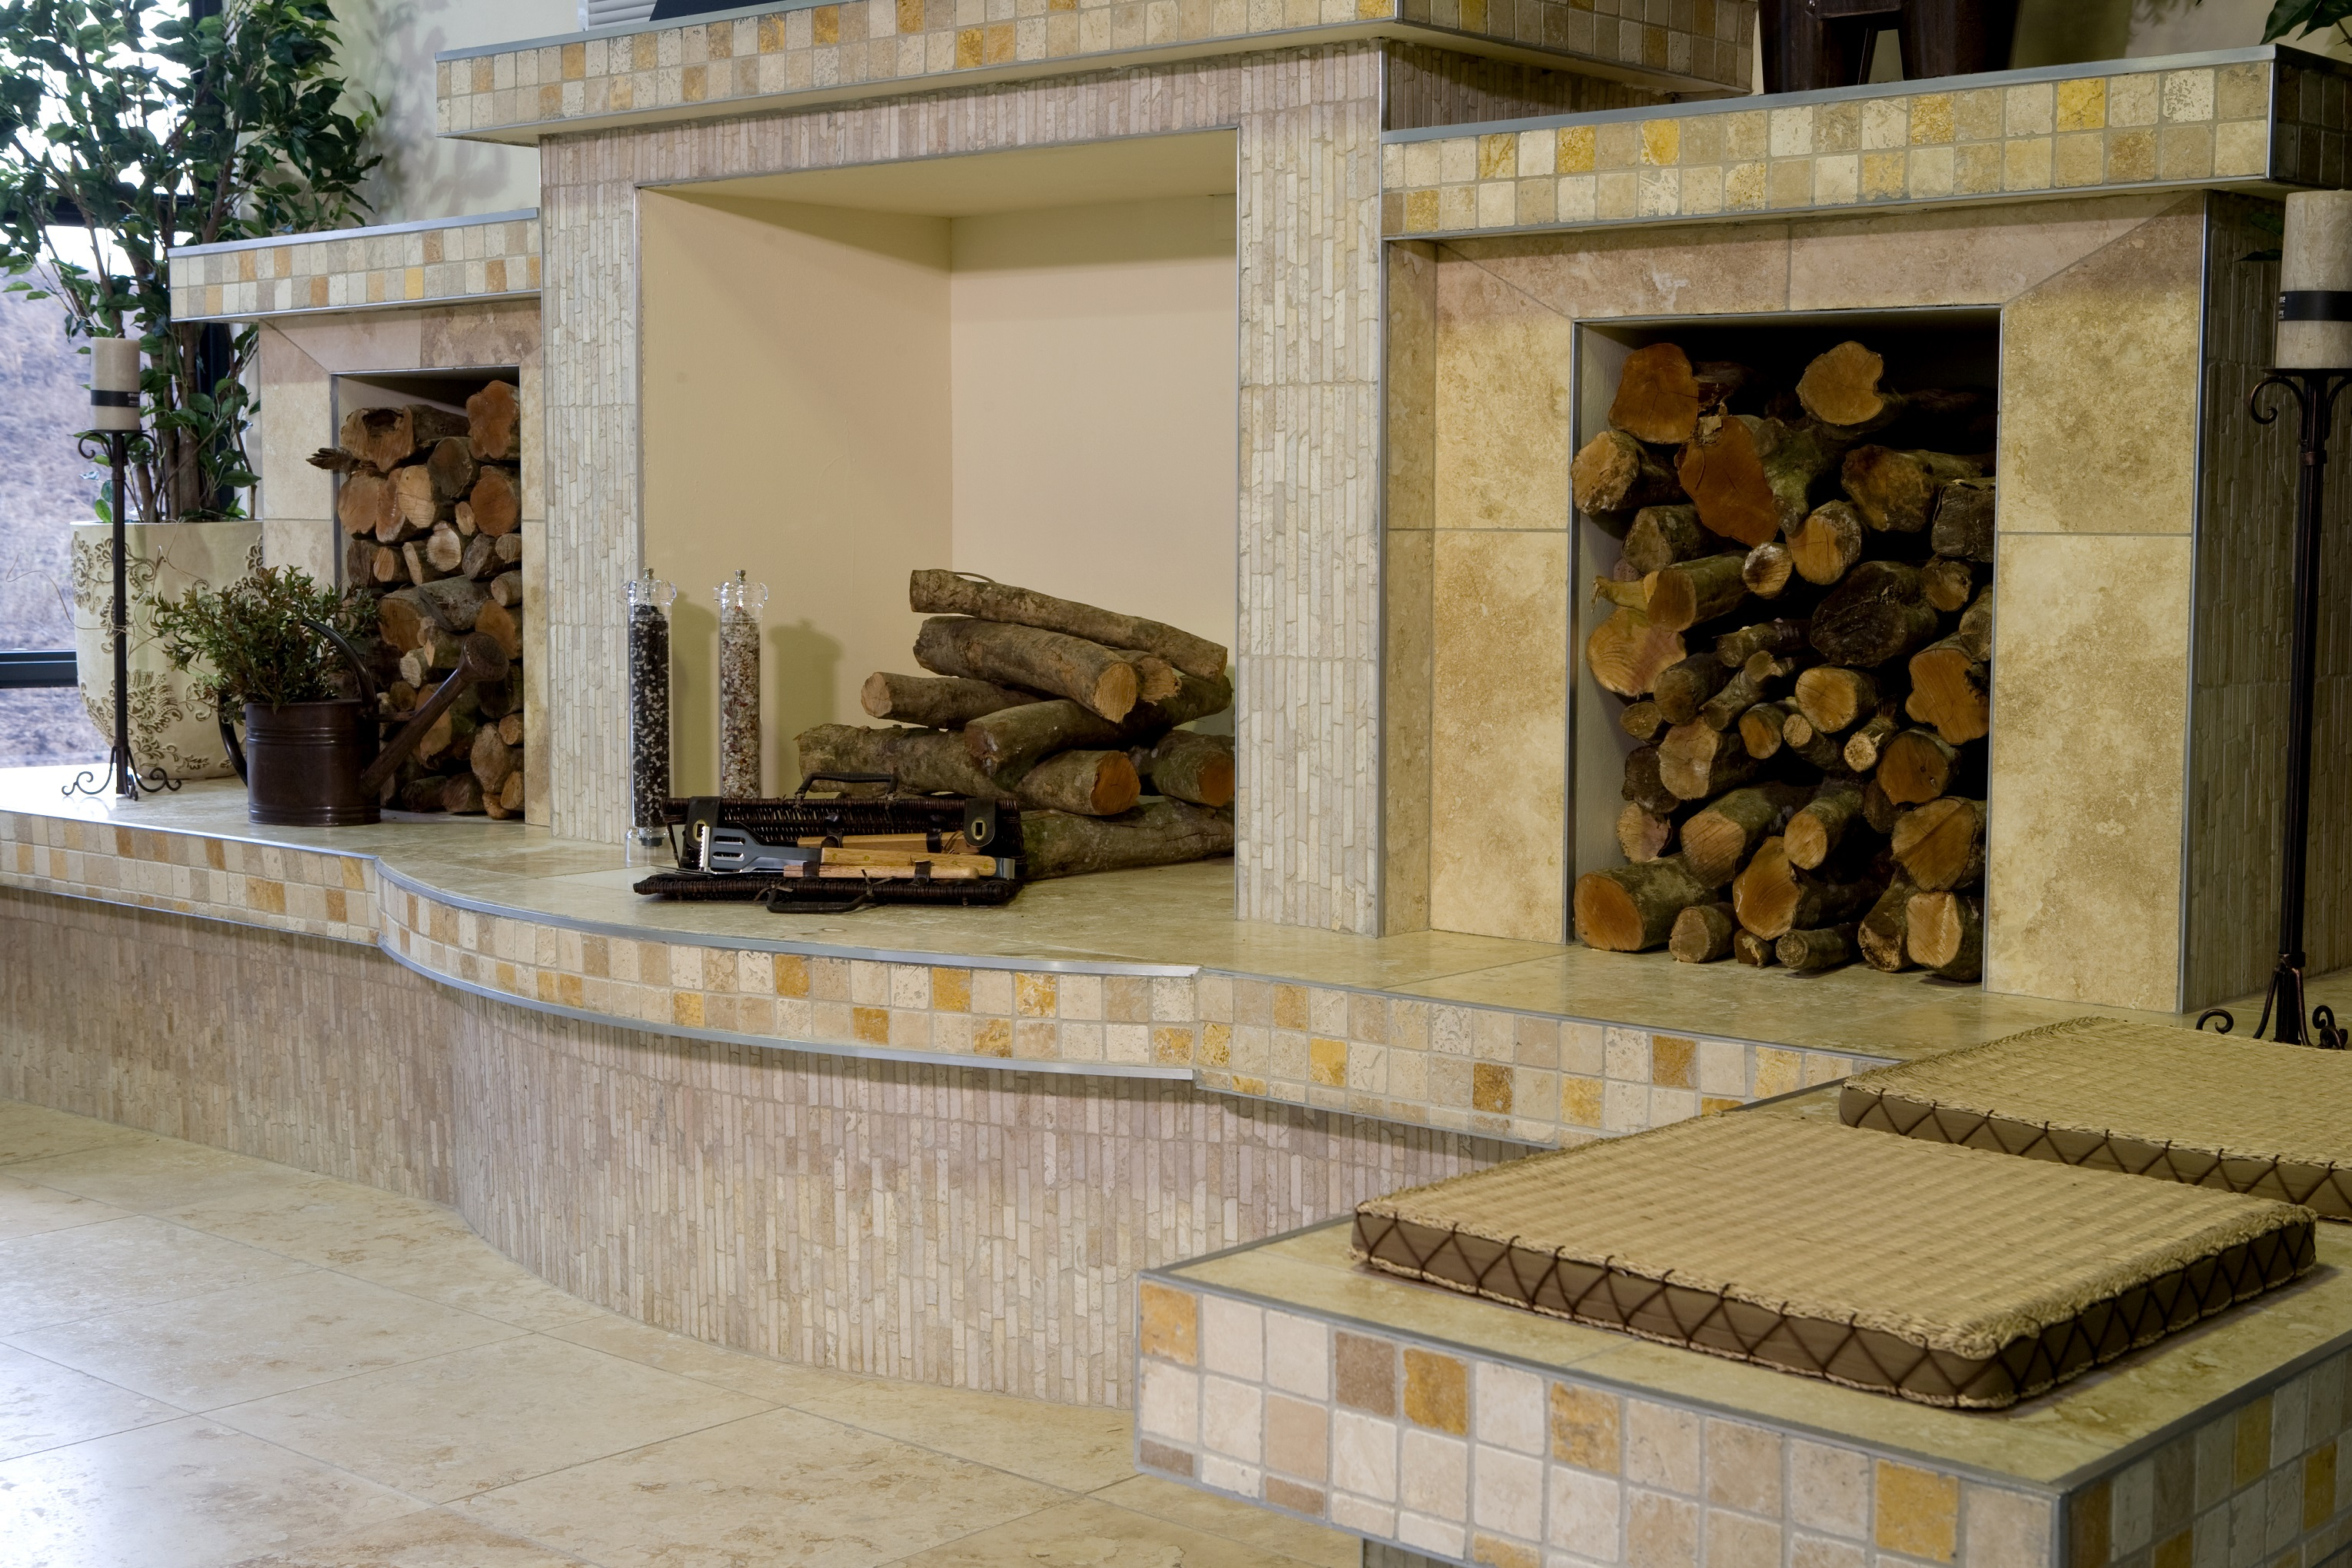 Choosing The Right Tiling Products For Your Braai Area